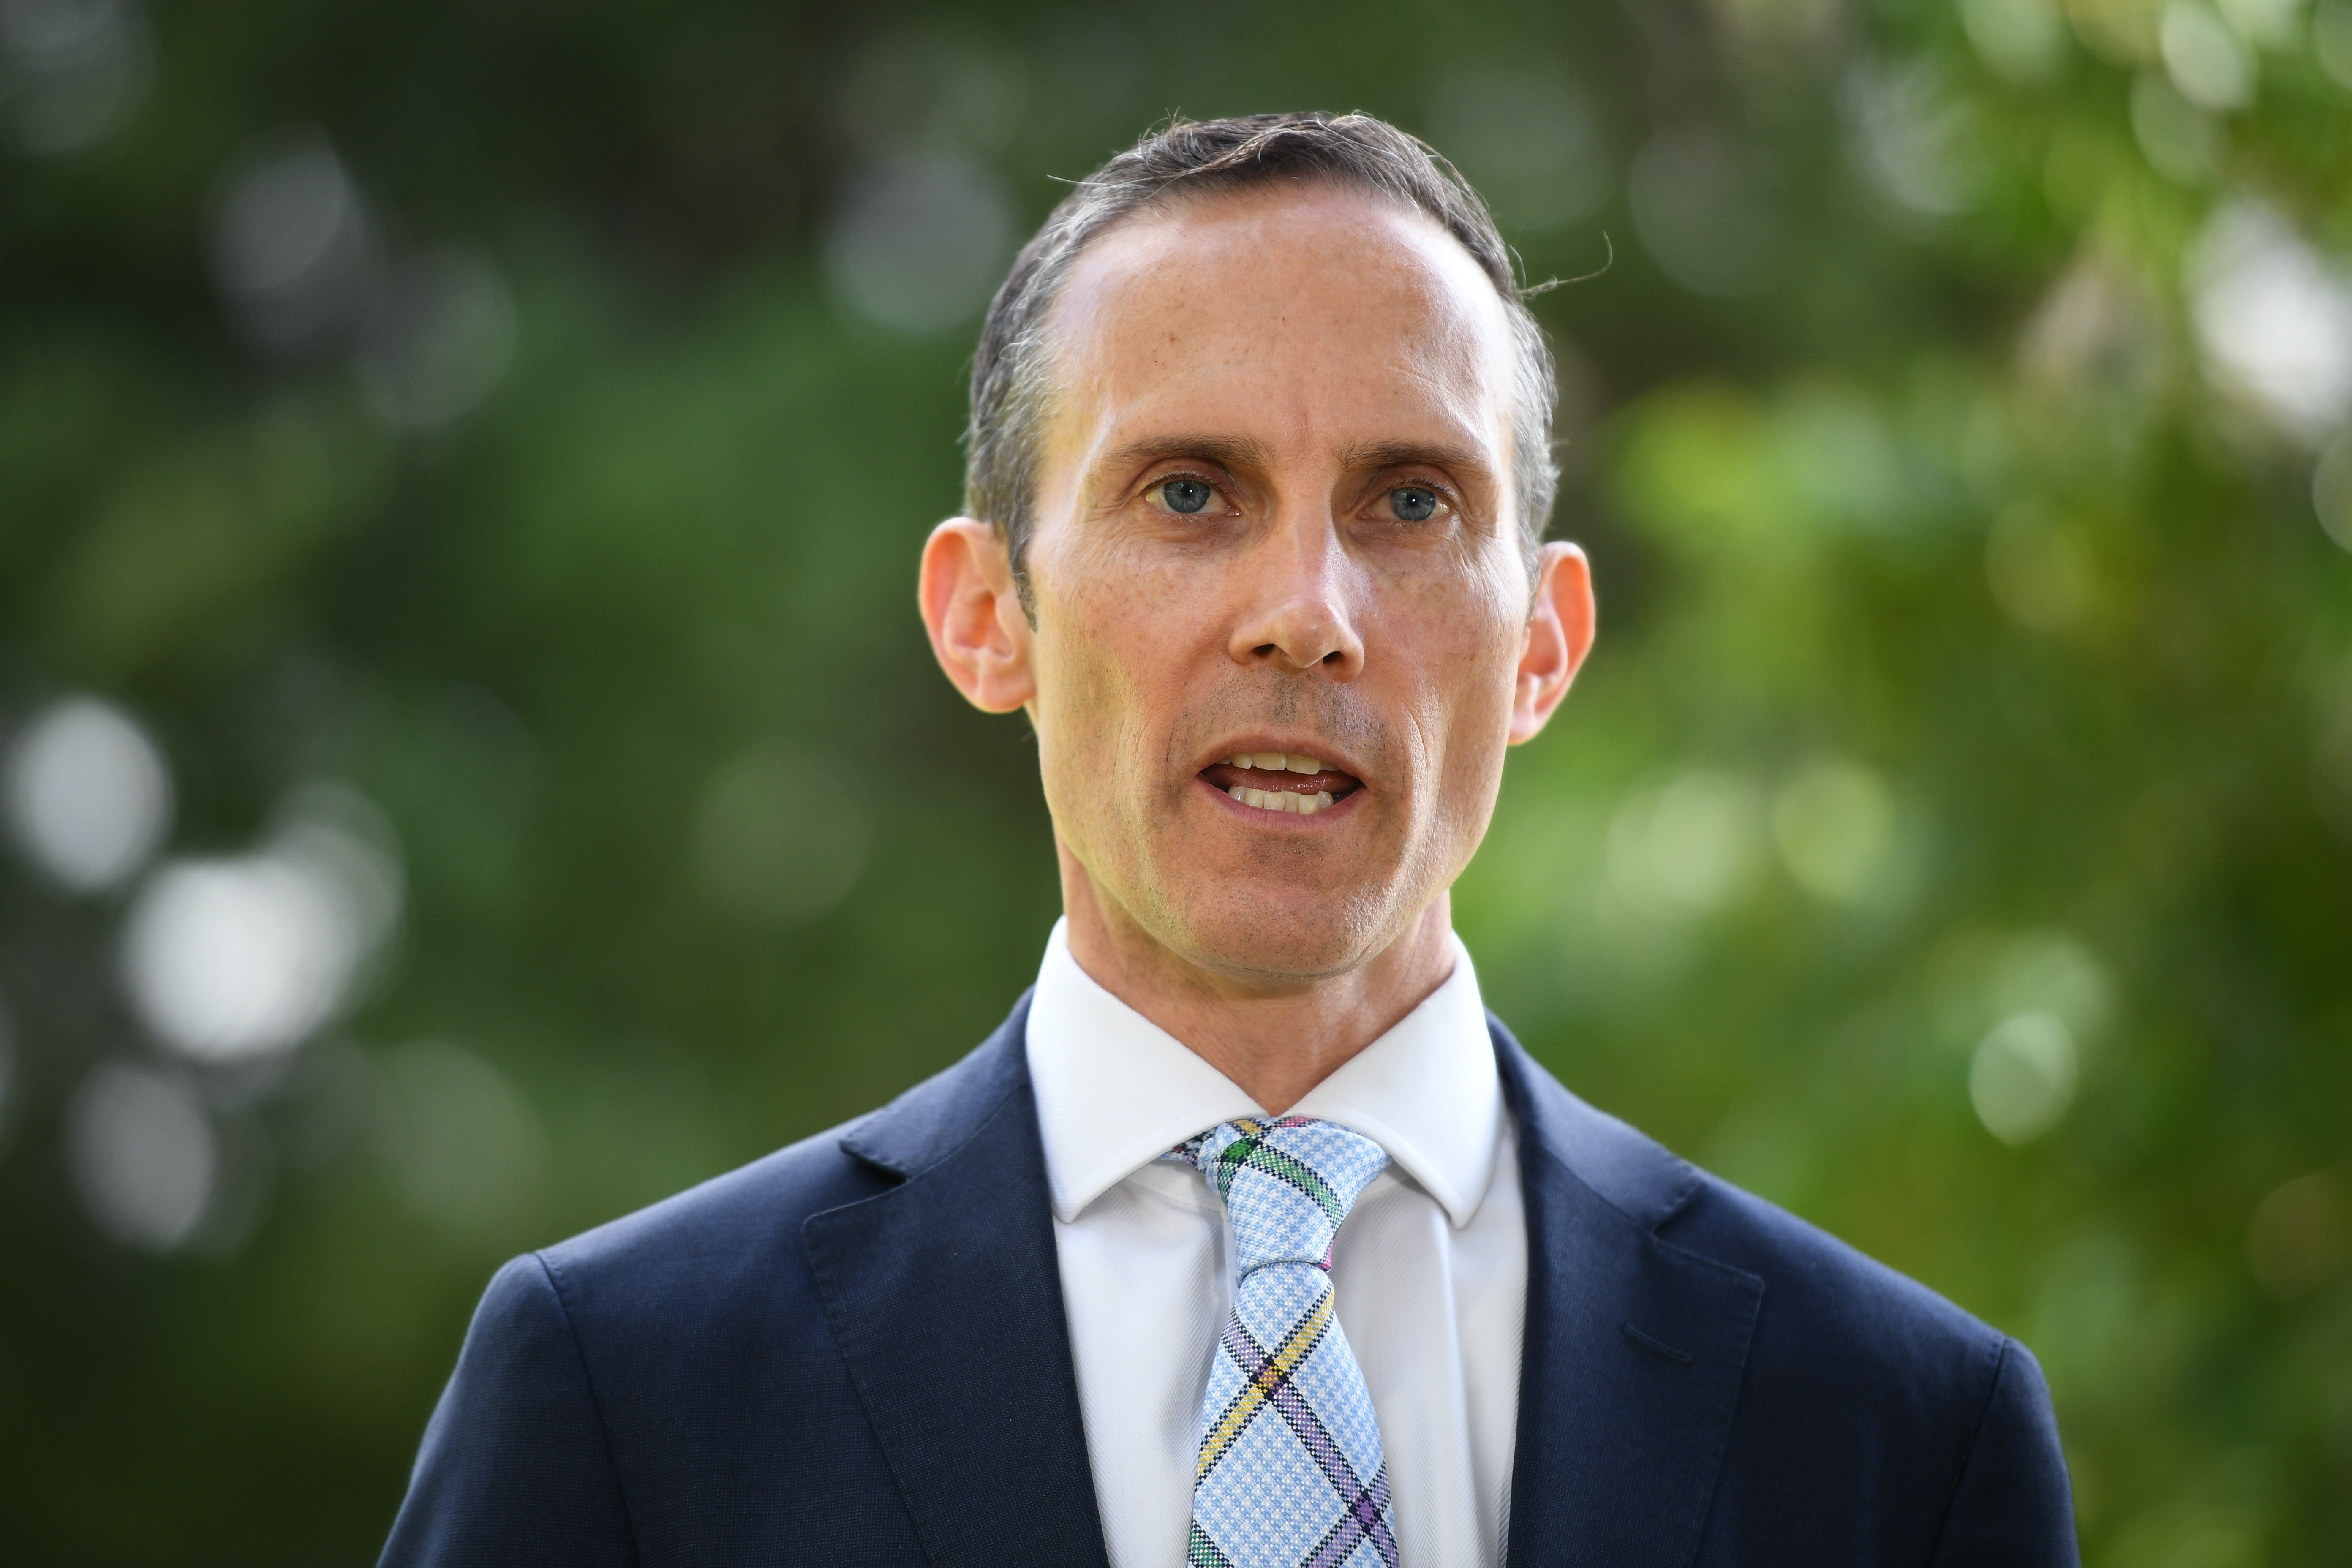 Labor's idea of an Evaluator General could dramatically cut wasteful spending